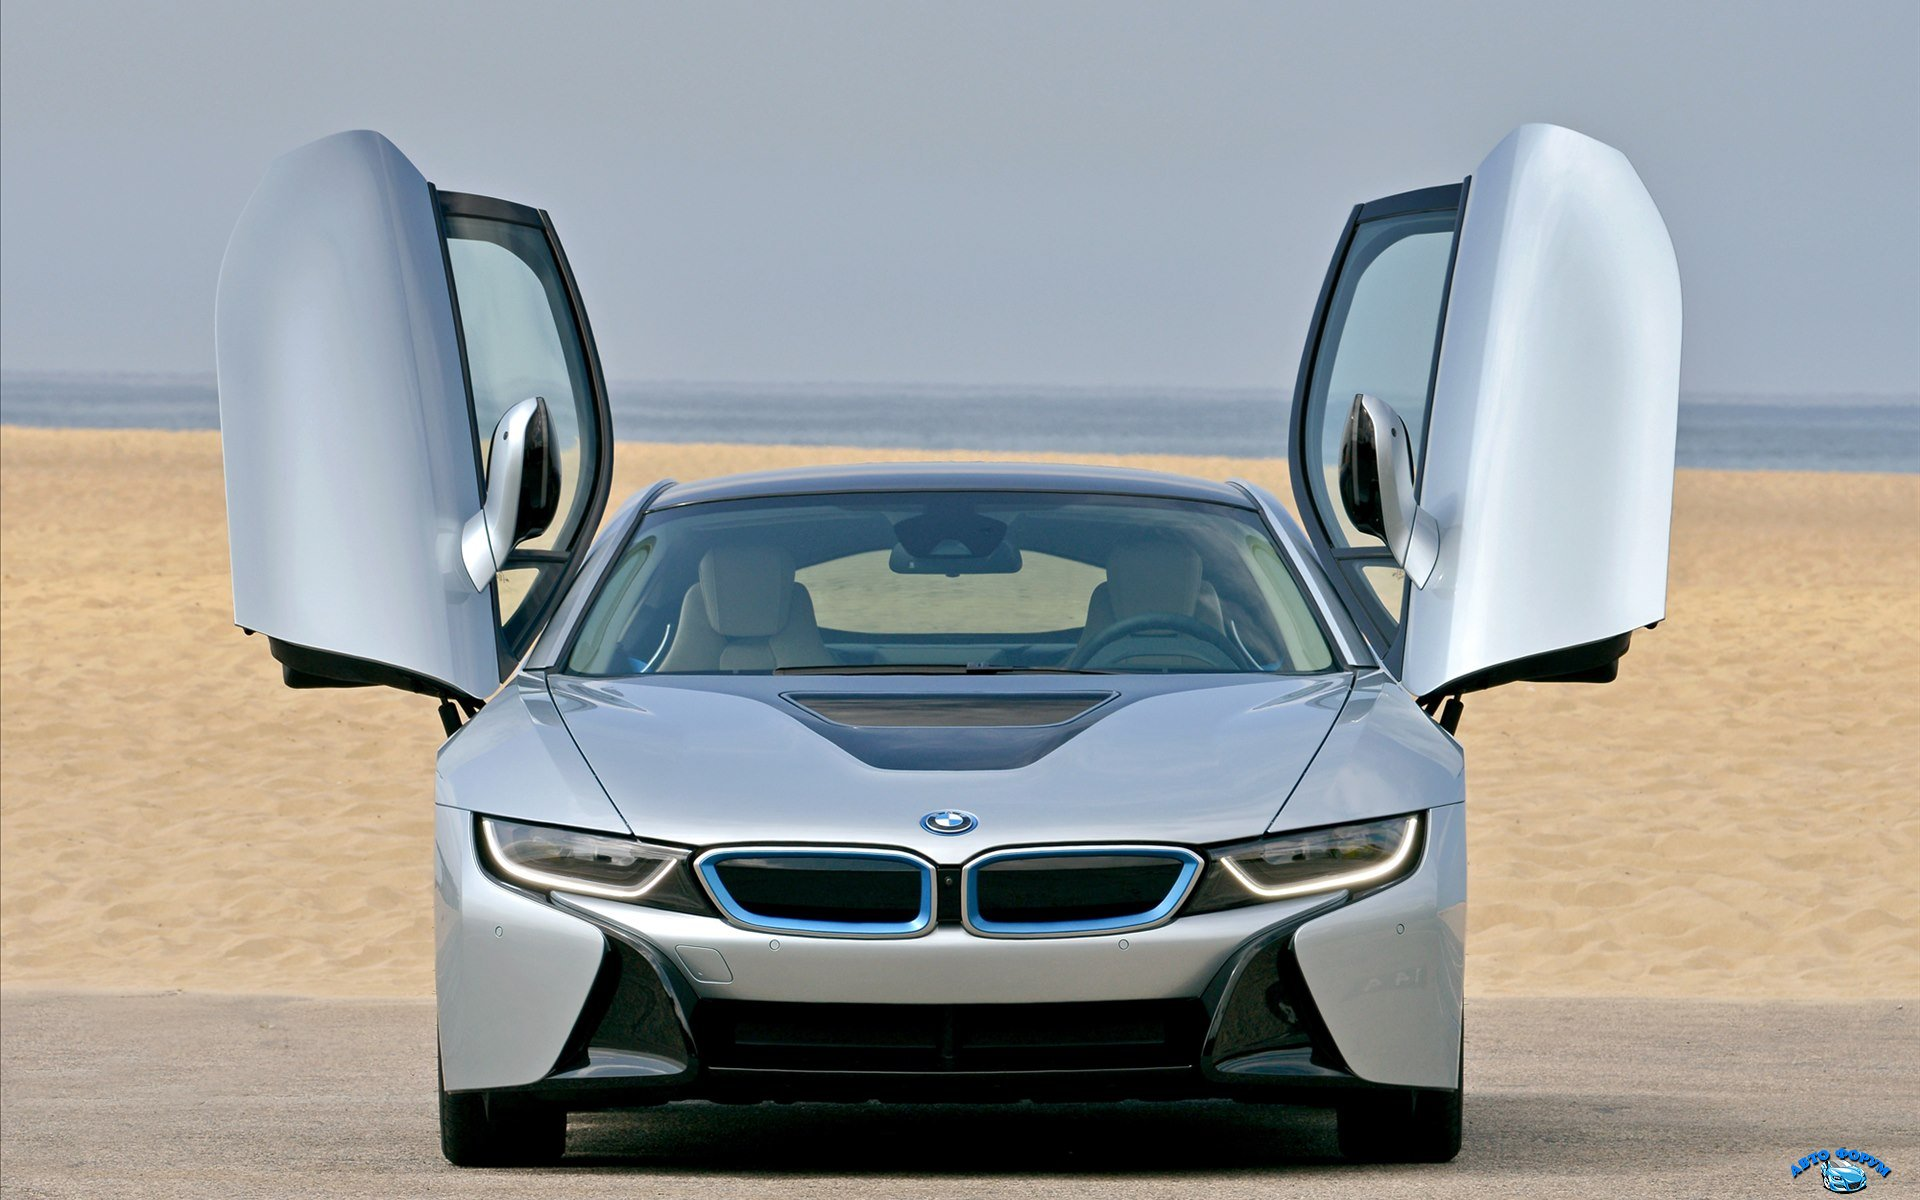 BMW-i8-2015-widescreen-87.jpg